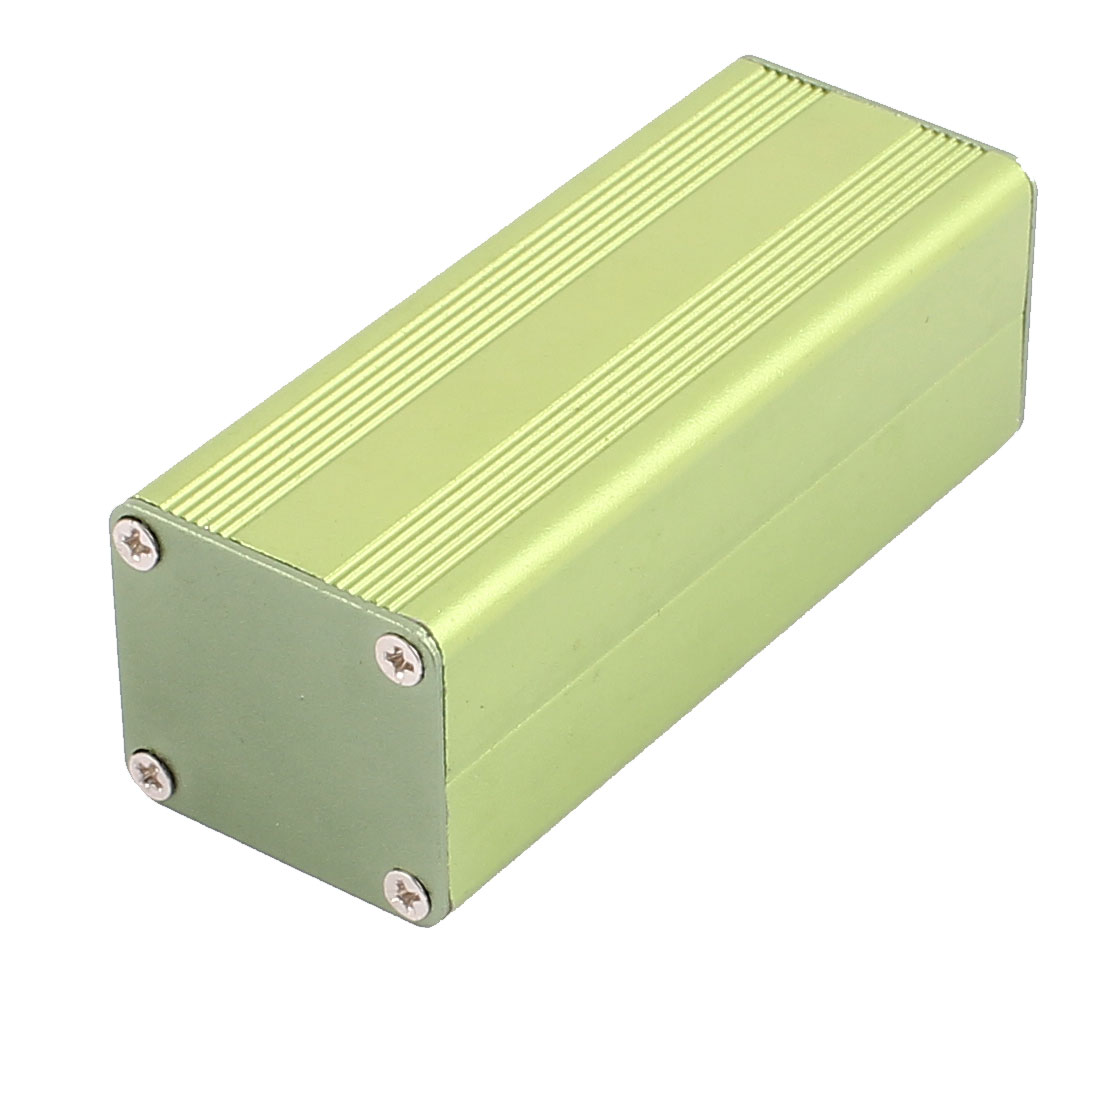 83 x 32 x 29mm Multi-purpose Electronic Extruded Aluminum Enclosure Case Green